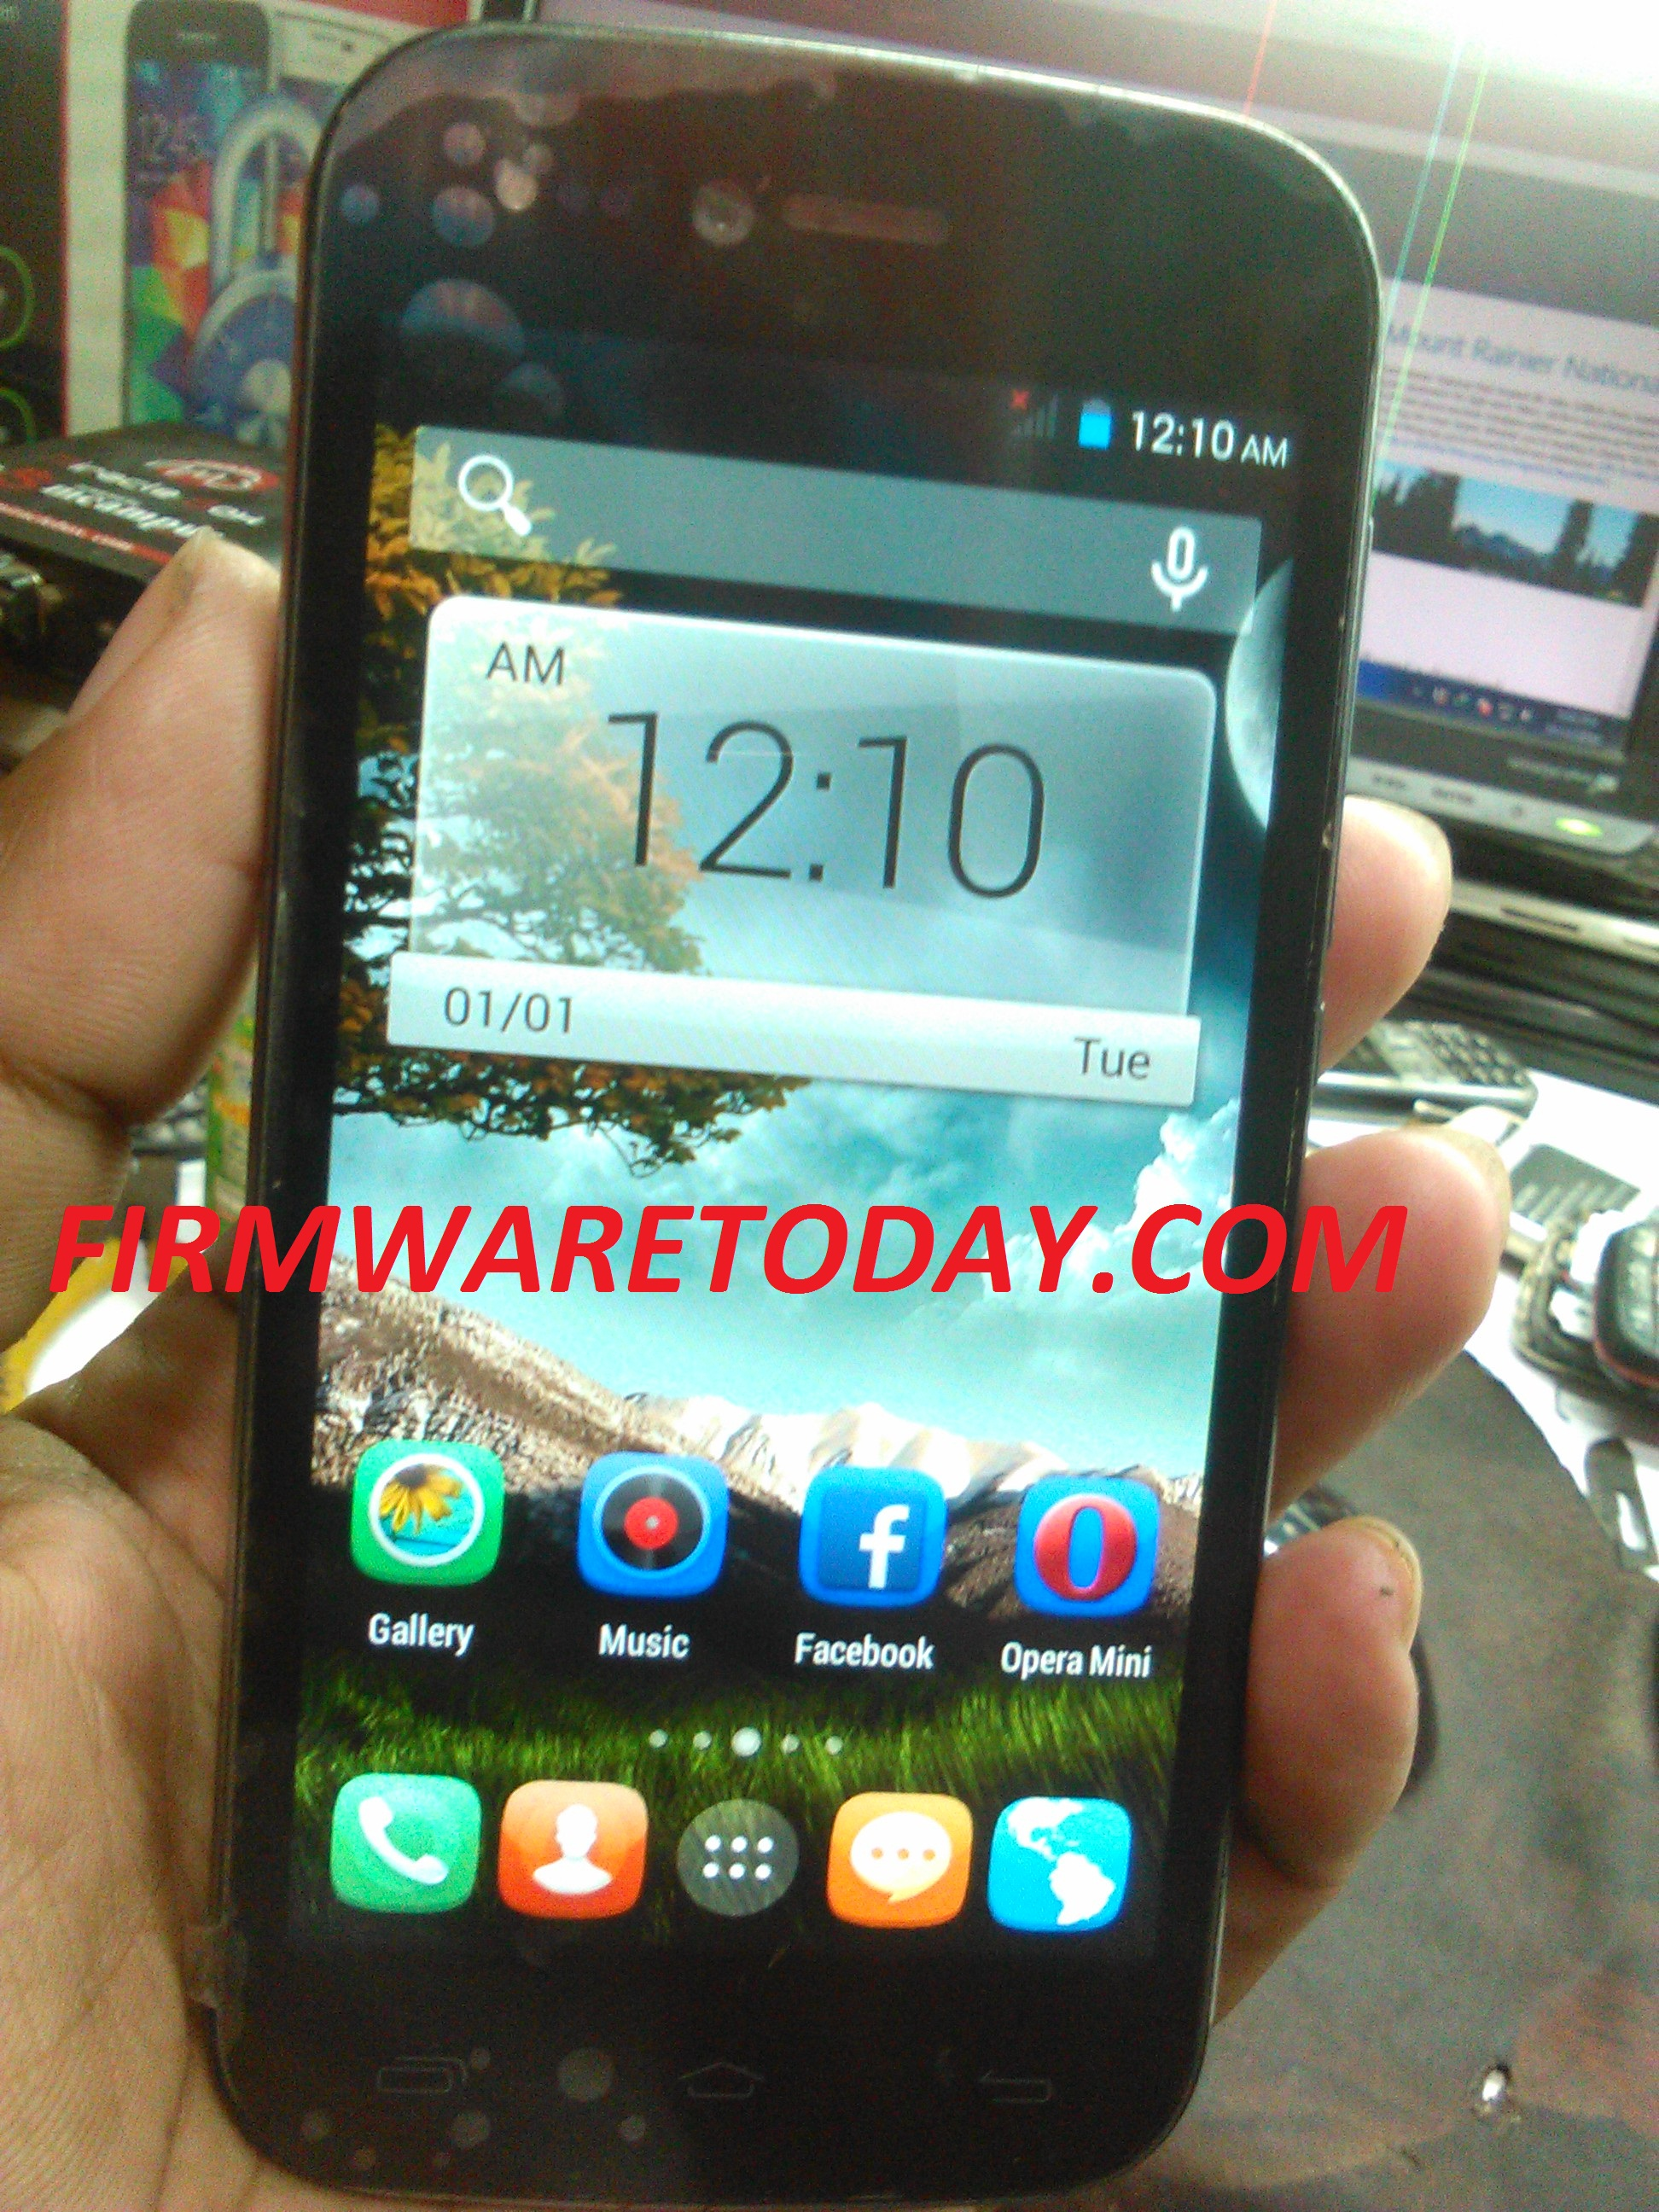 SYPHONY W94 OFFICIAL FIRMWARE UPDATE WITHOUT PASS (MT6582) 2000% TESTED BY ( FIRMWARETODAY.COM)